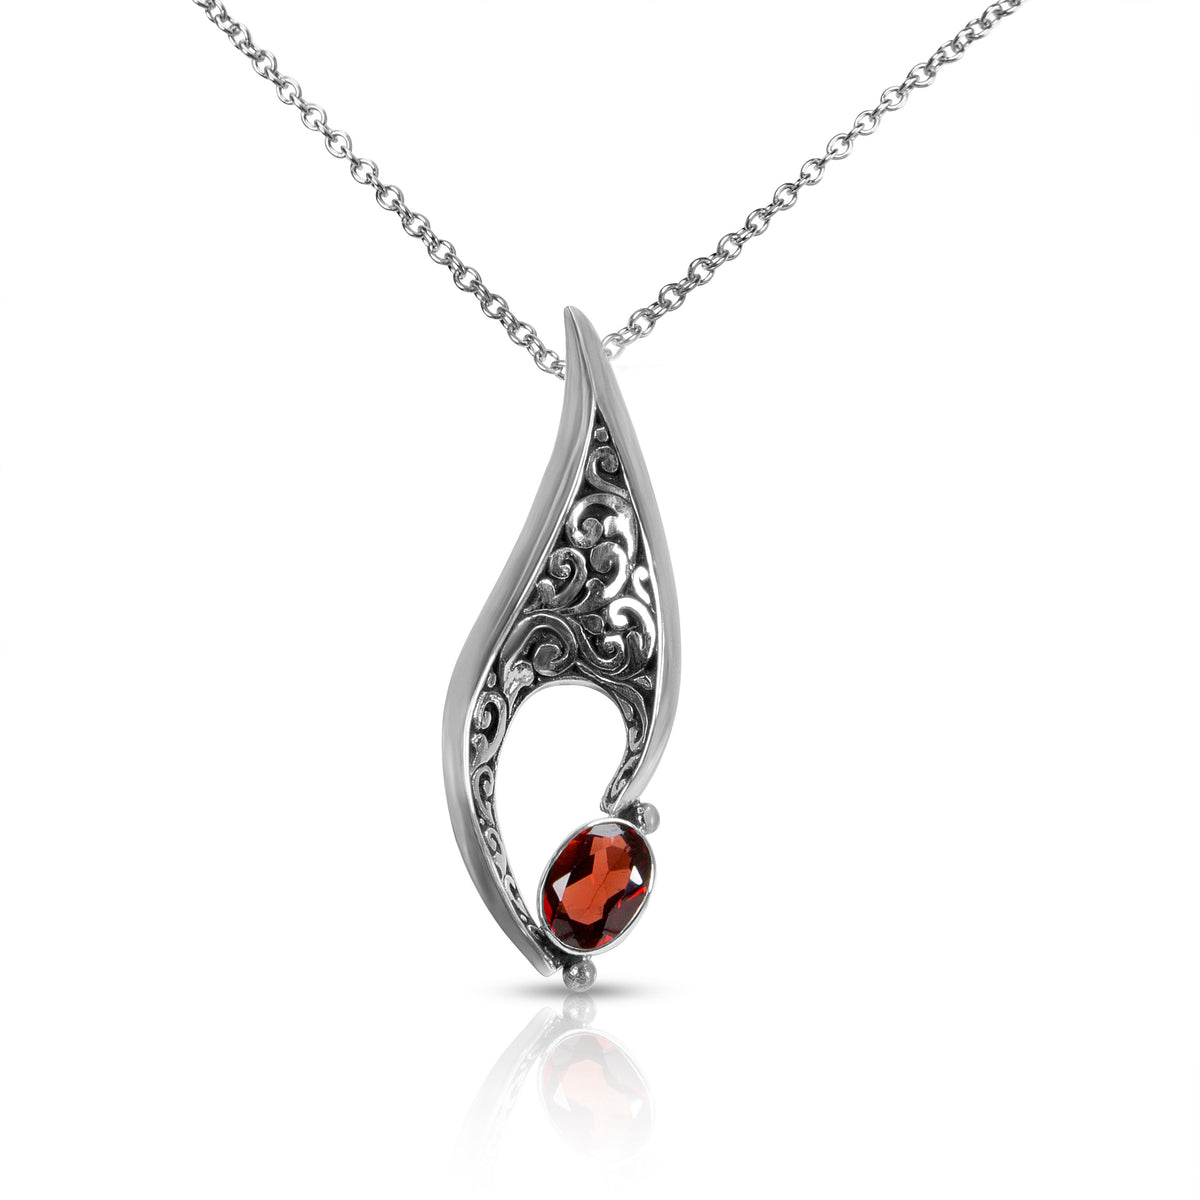 Robert Manse Garnet Modern Scrollwork Pendant in Sterling Silver with Chain